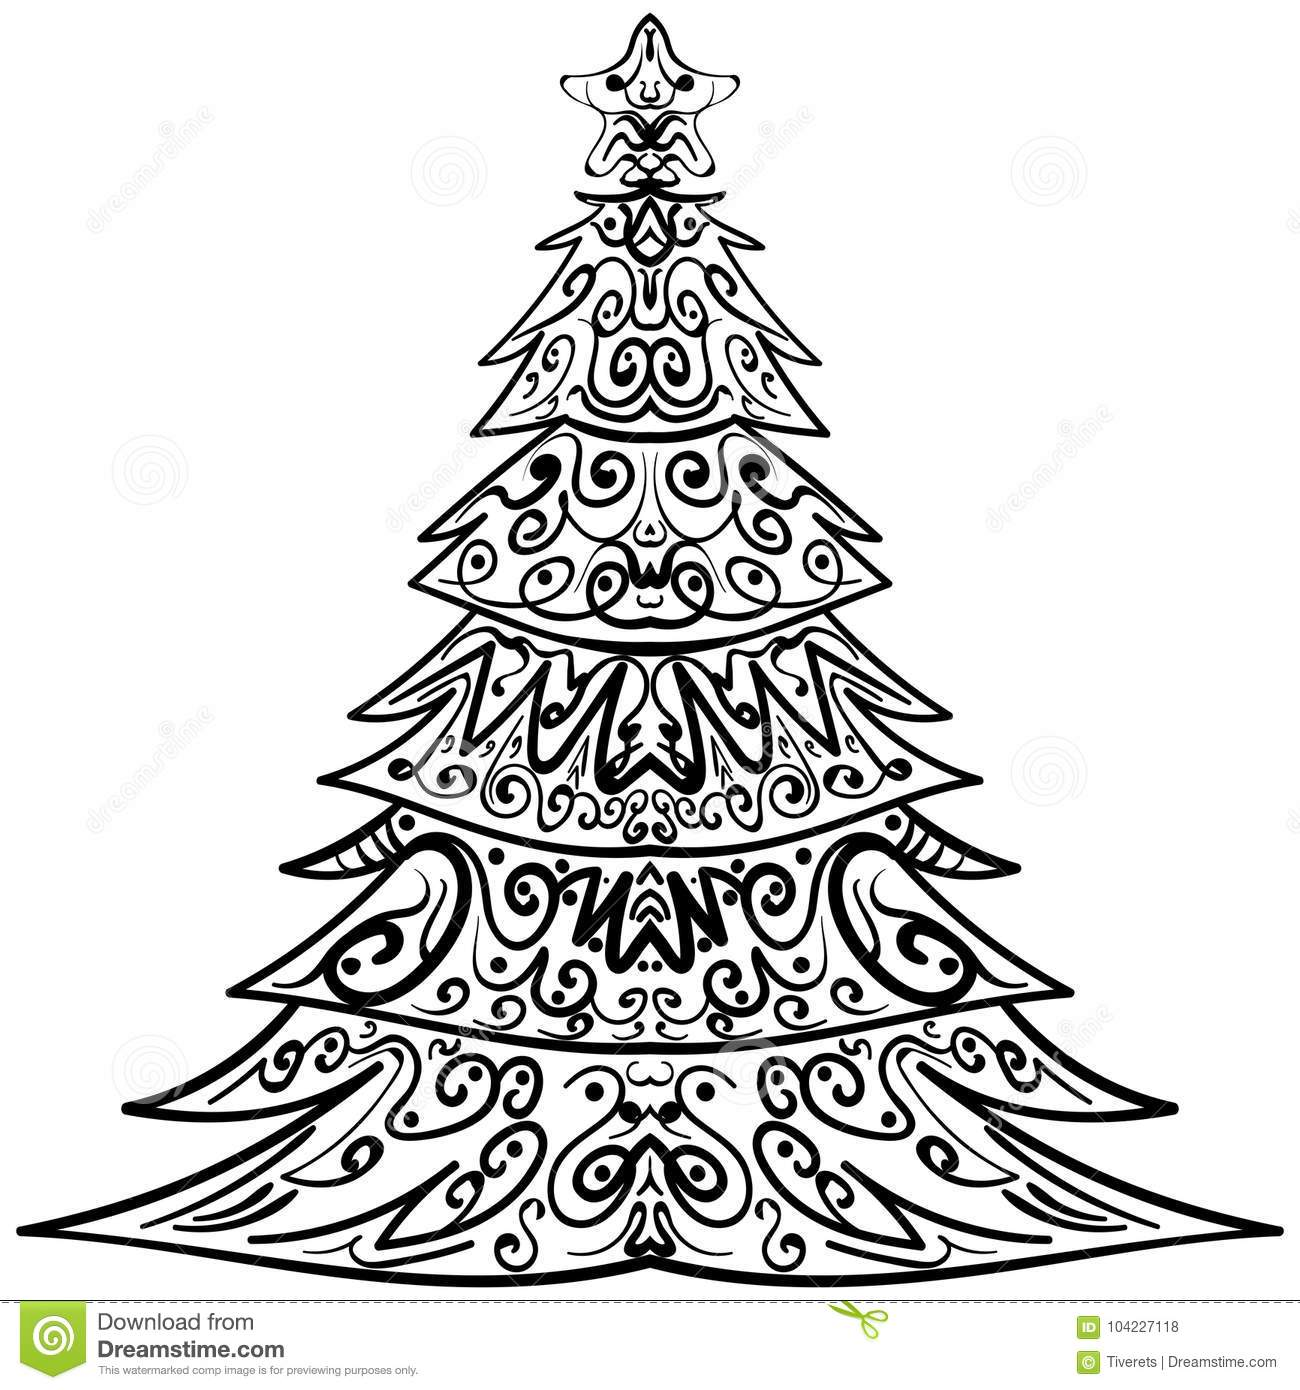 Zentangle Christmas Tree Decorative Doodle Stock Vector ...